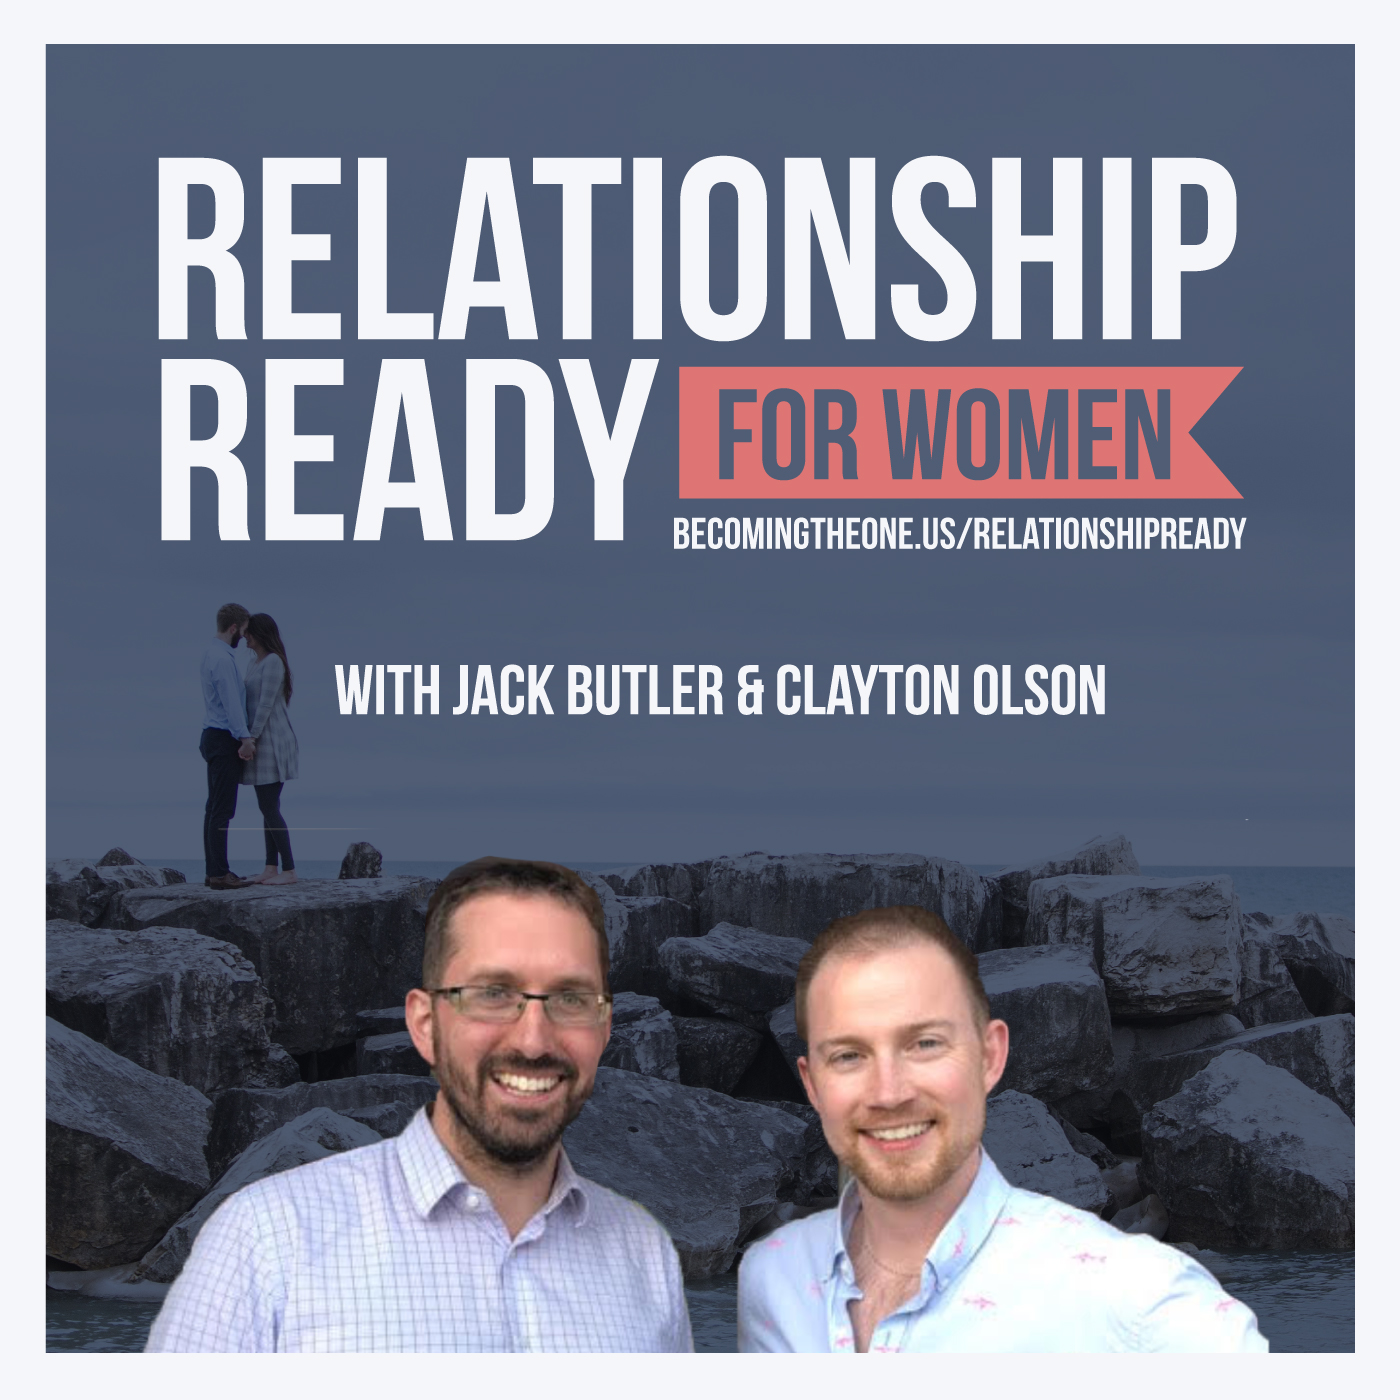 Relationship Ready - How To Make A Relationship Work